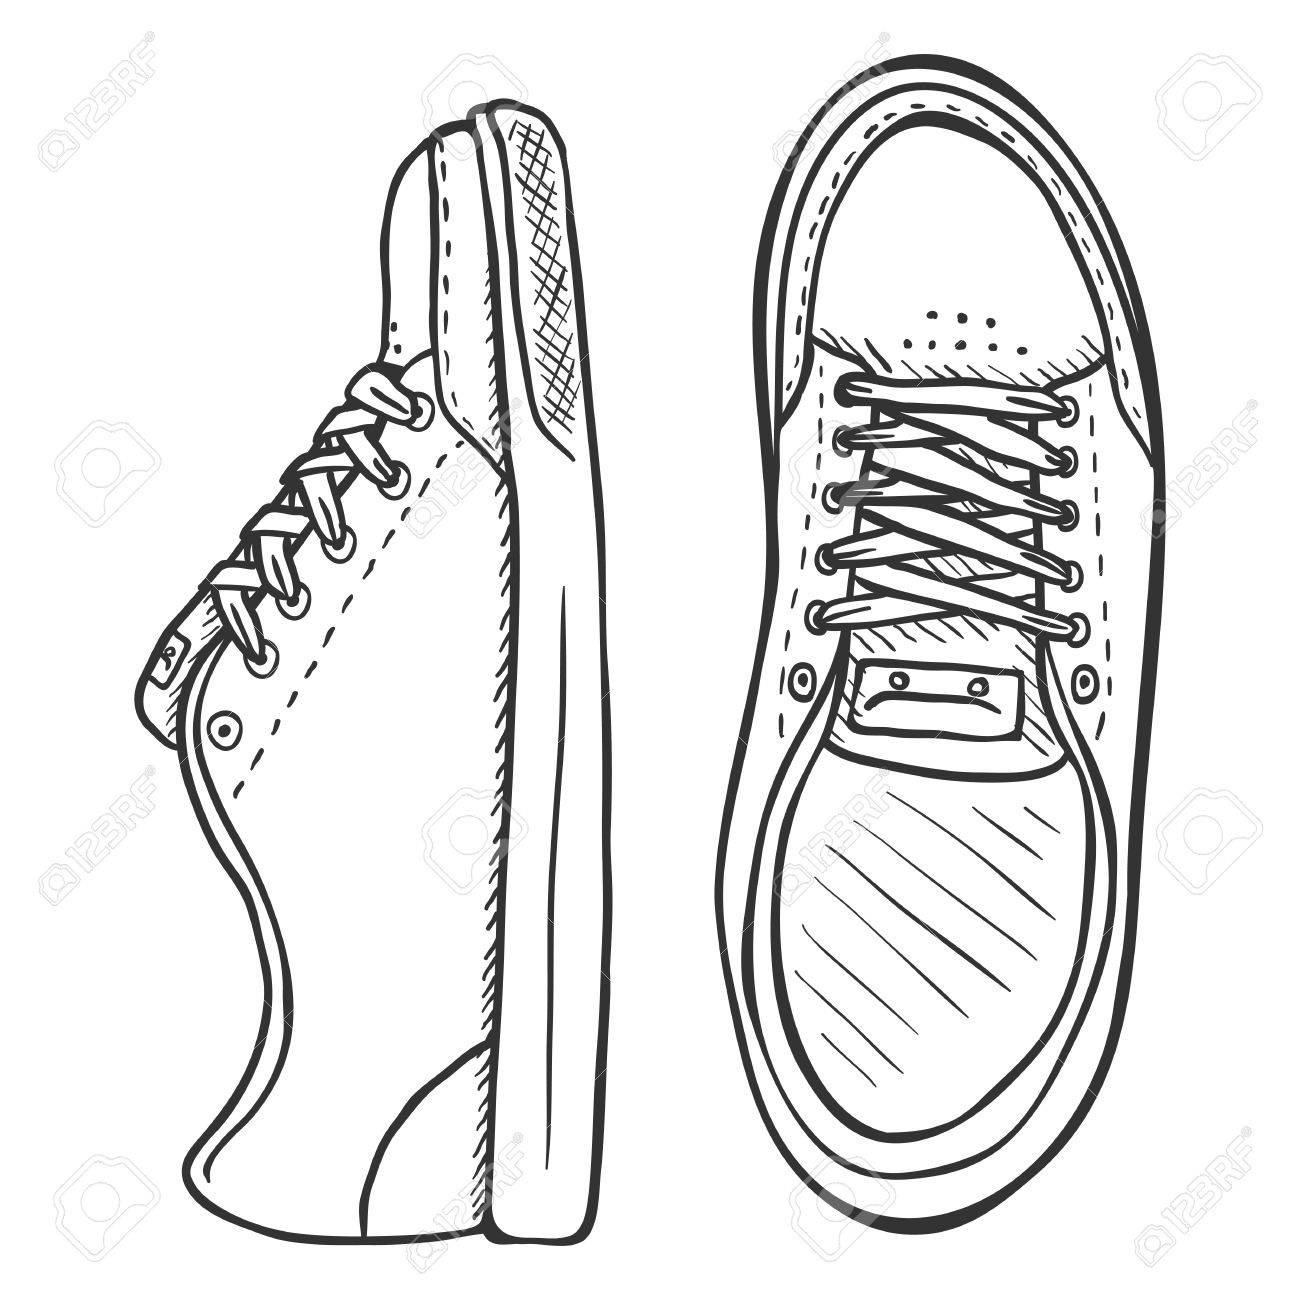 how do you draw a shoe how to draw shoes step by step fashion pop culture do a you how draw shoe